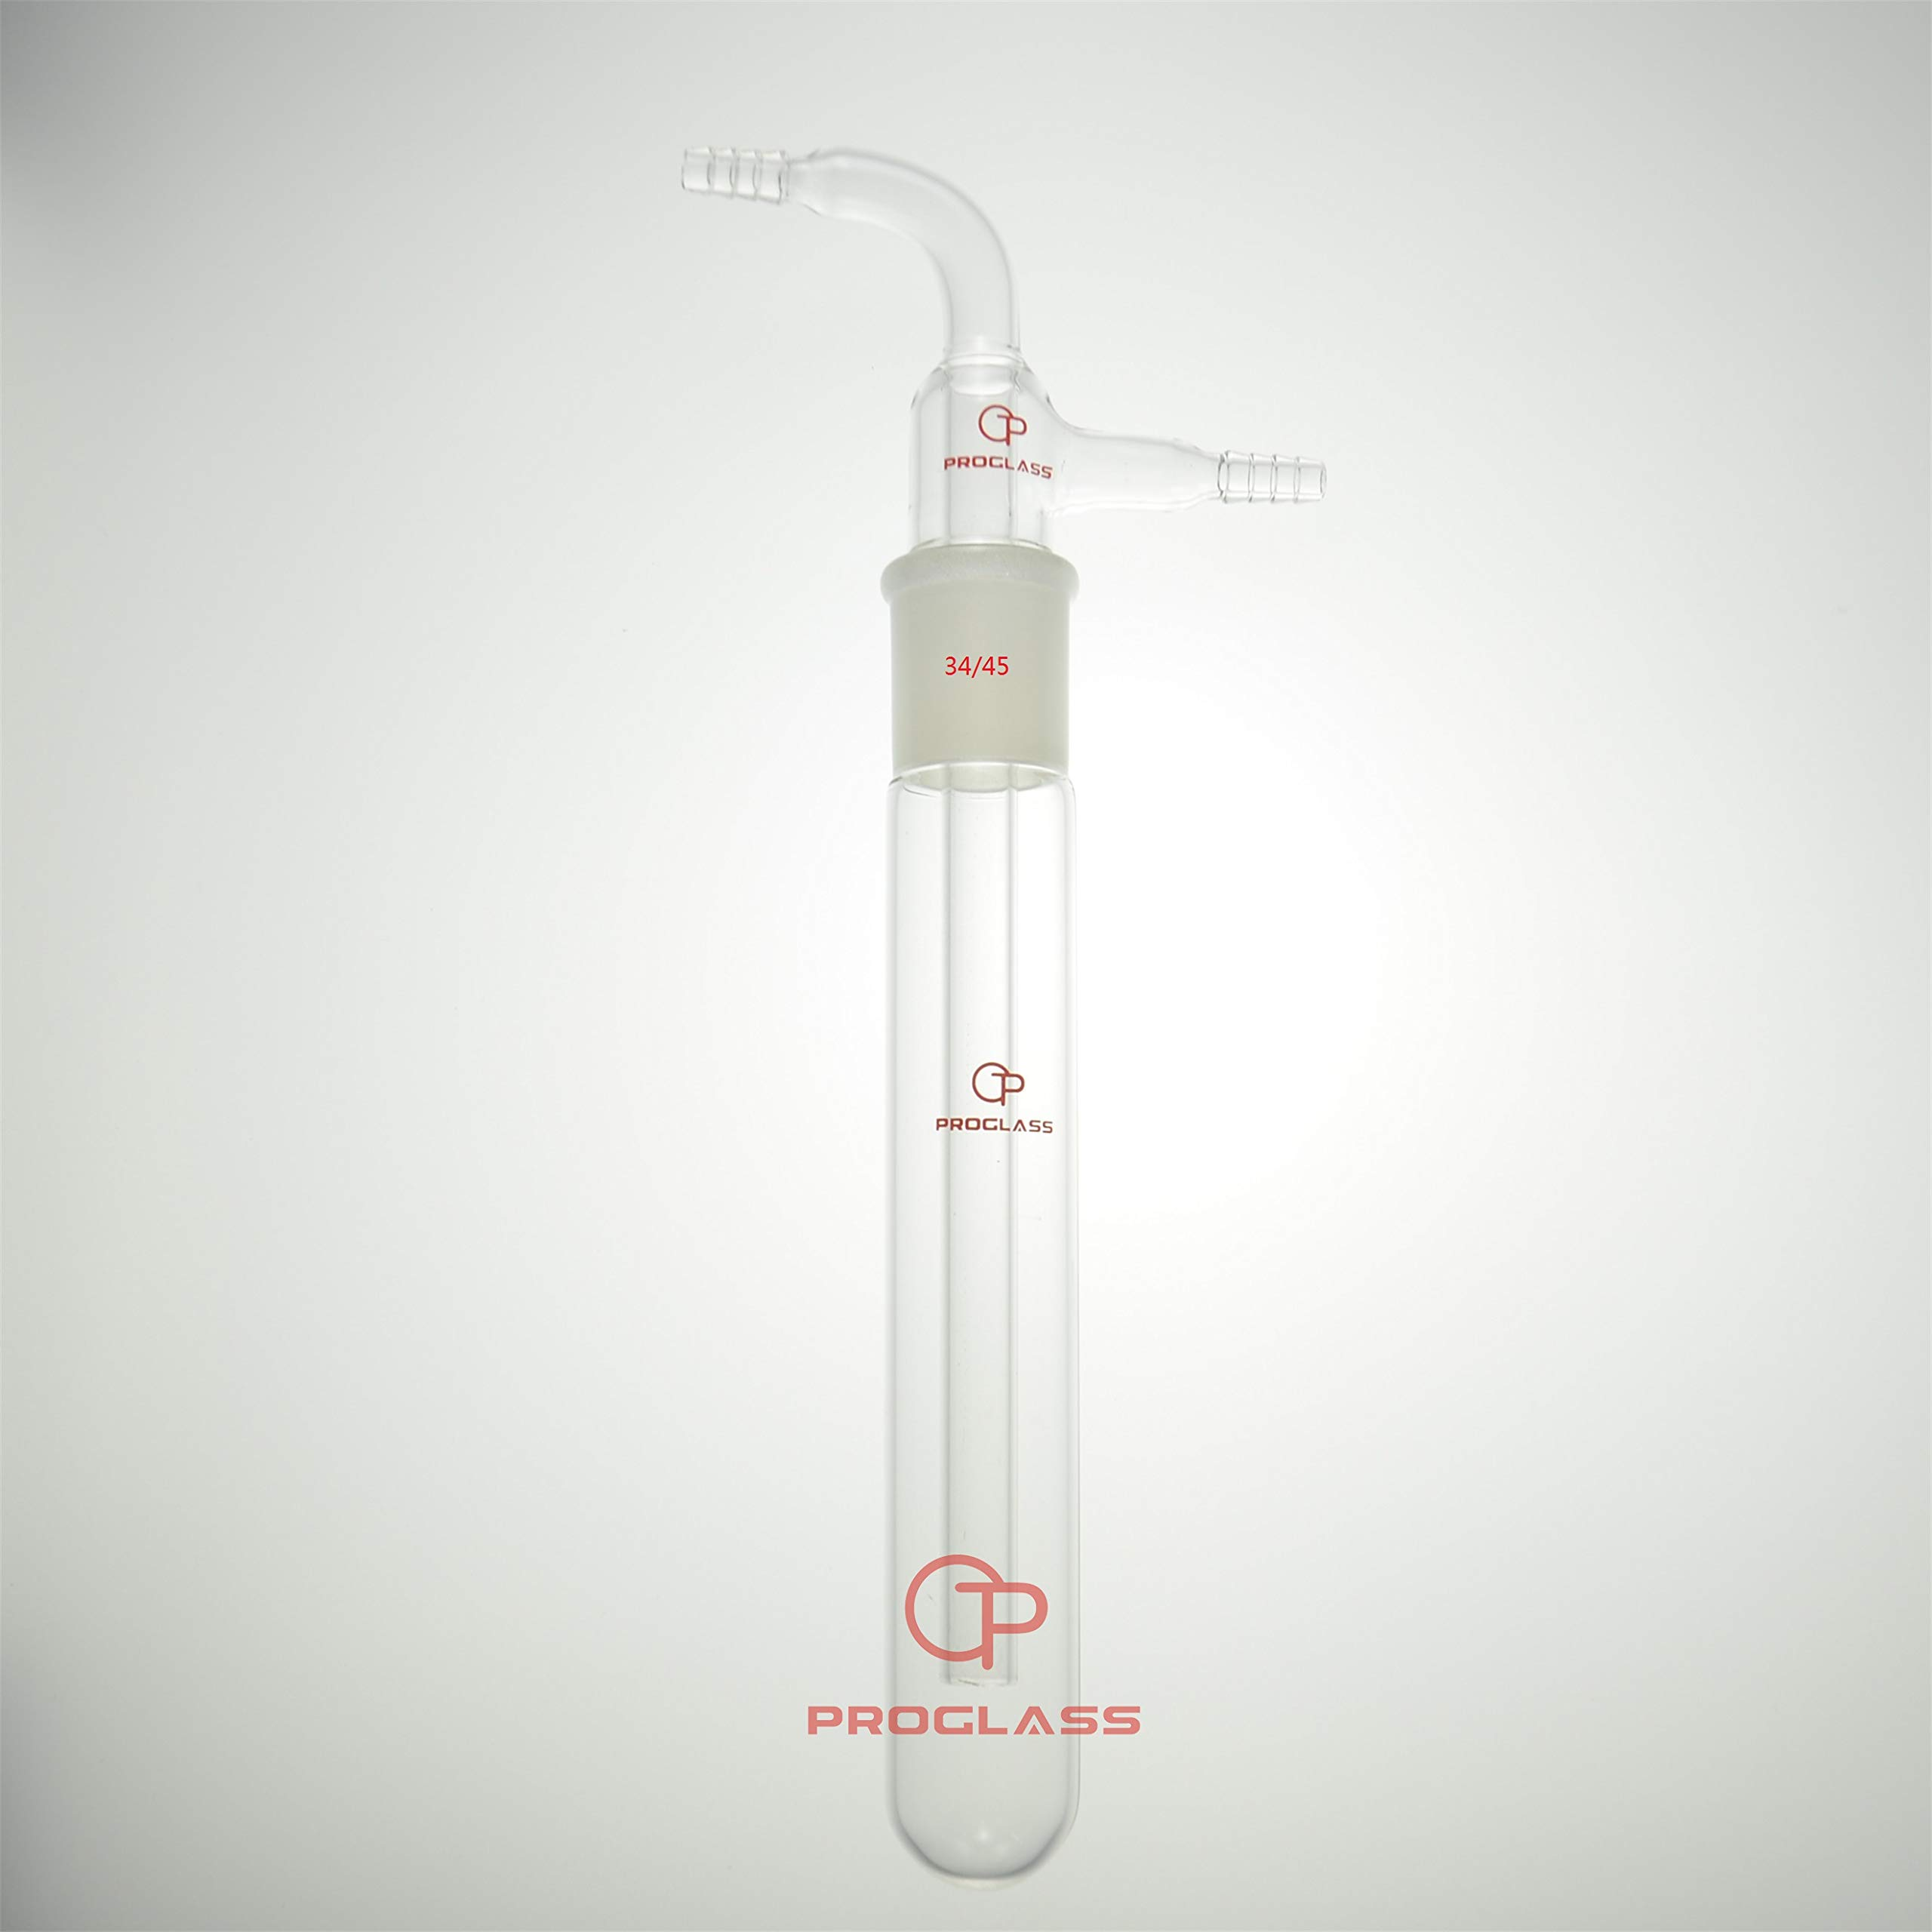 PROGLASS Glass Vacuum Trap with 10 mm Hose, 225 mm Length Below The 34/45 Joint by PROGLASS